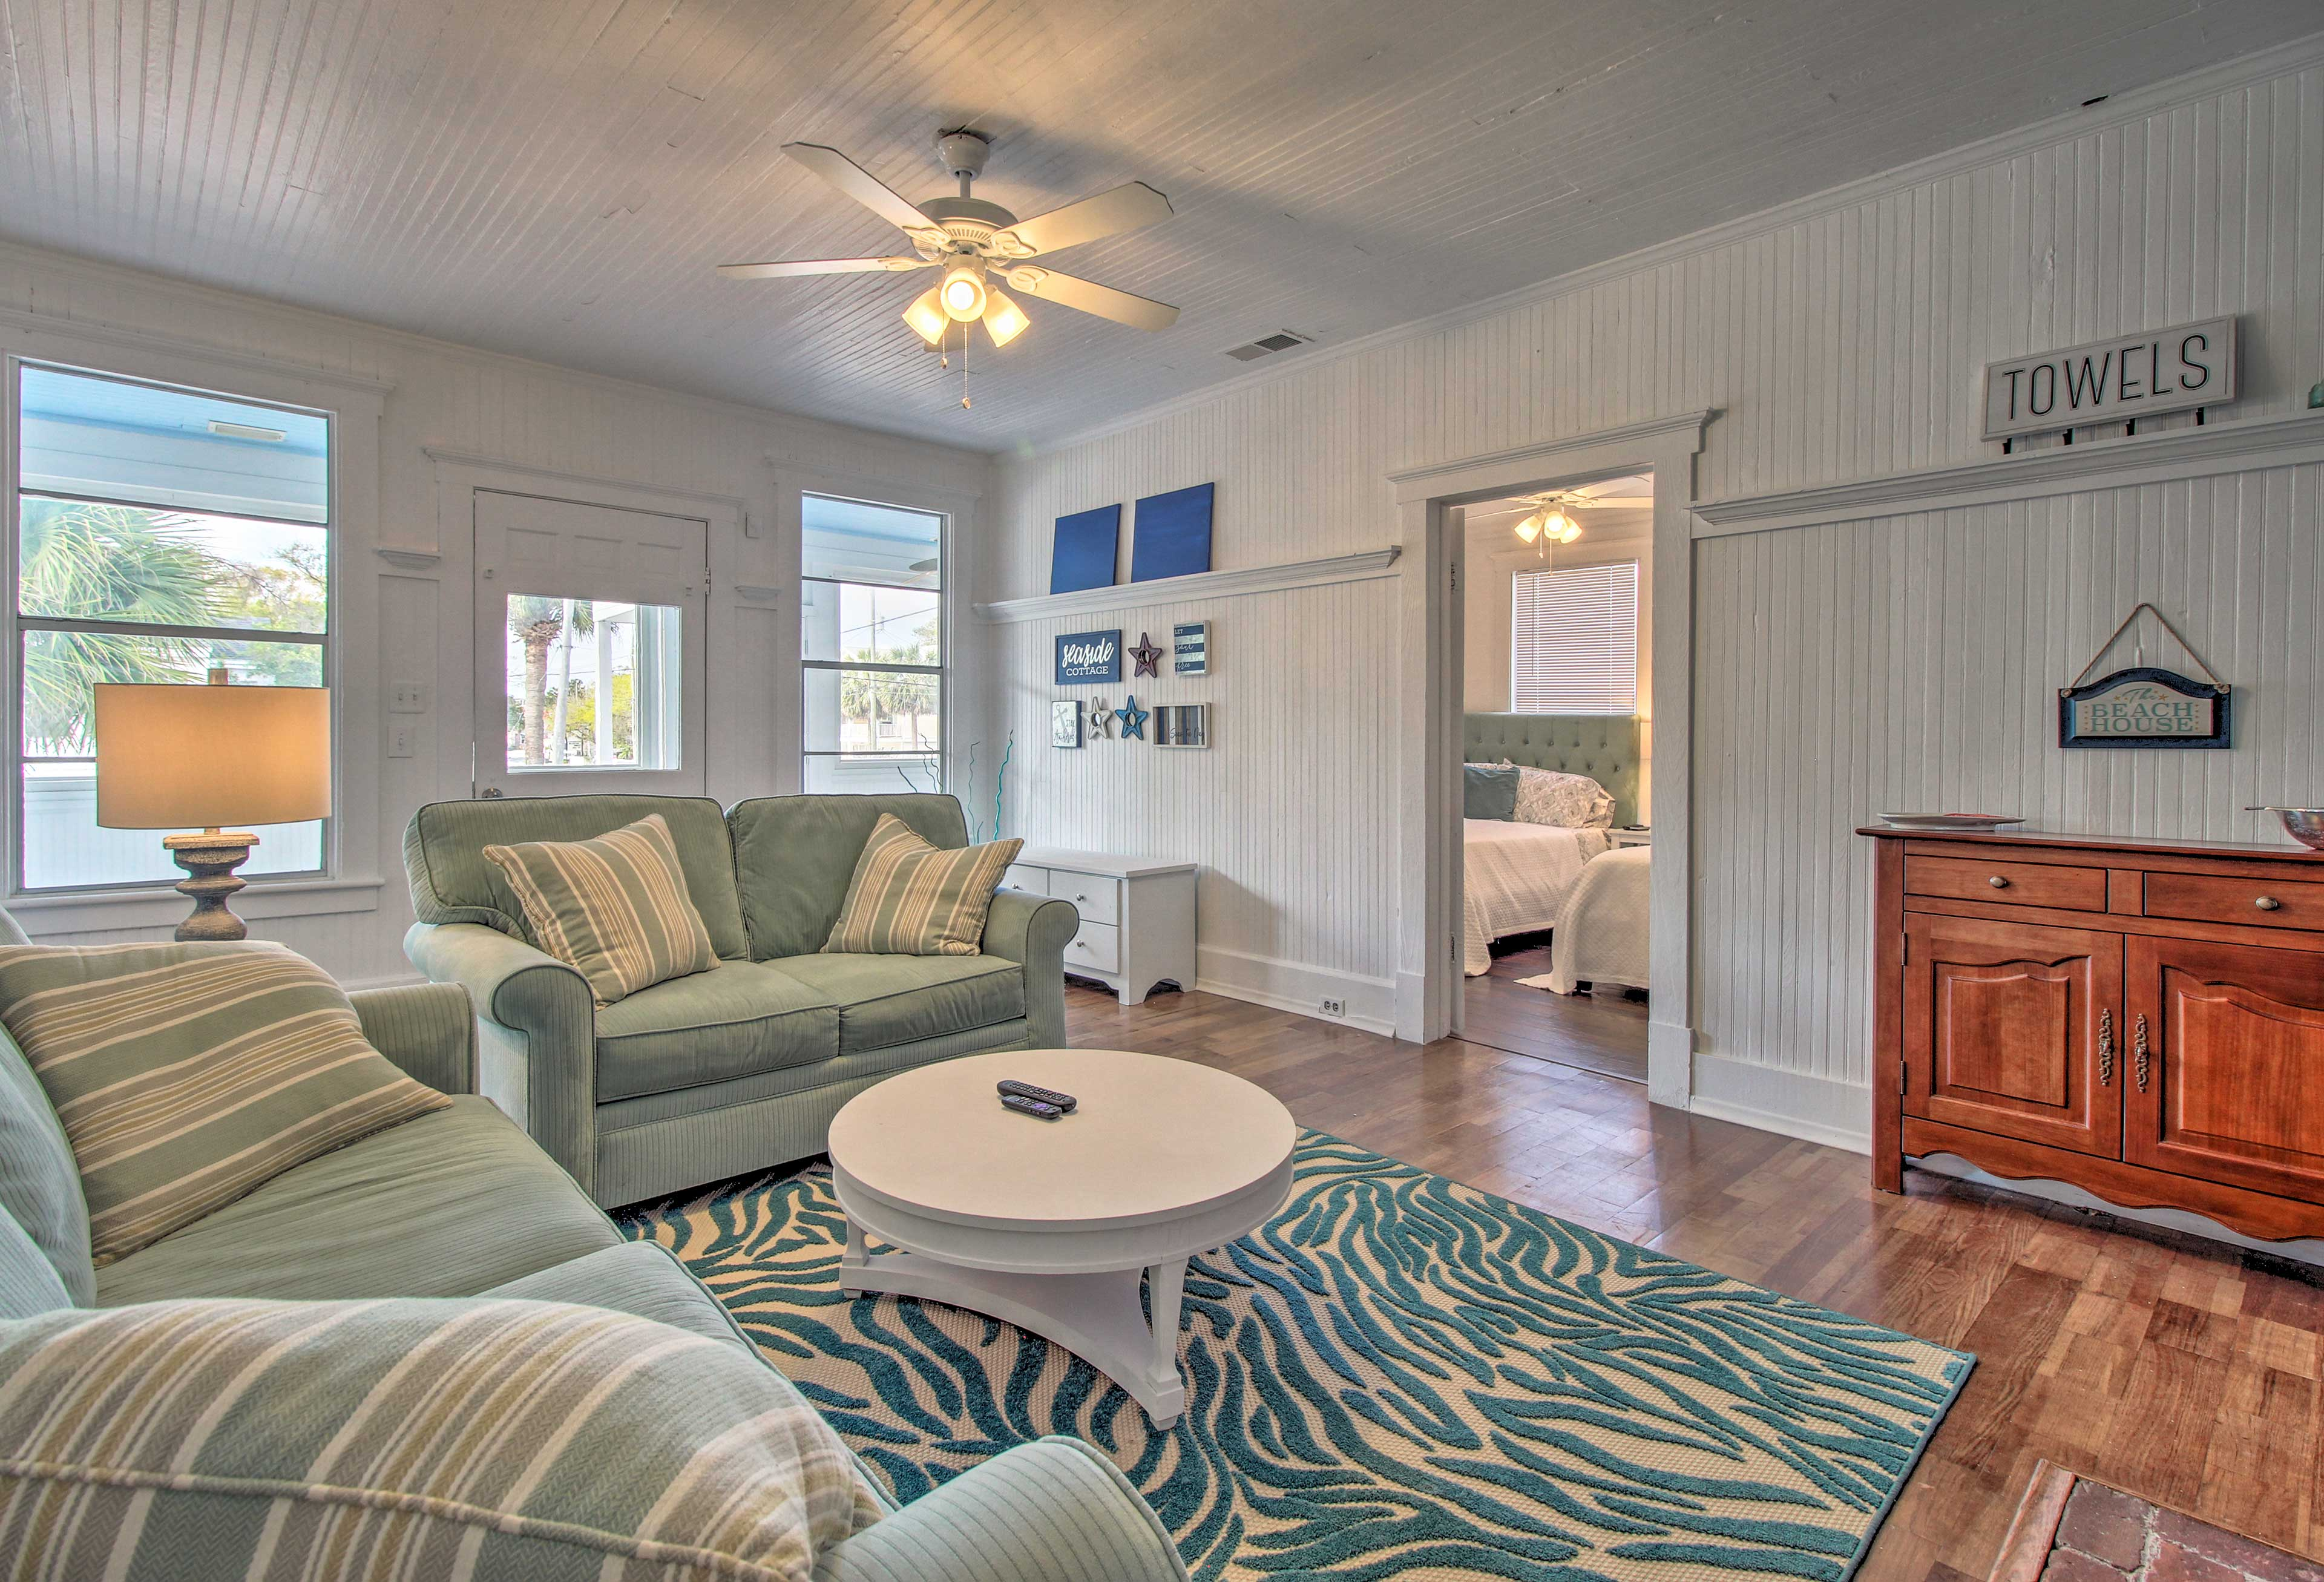 Coastal-chic decor and furnishings are found throughout.